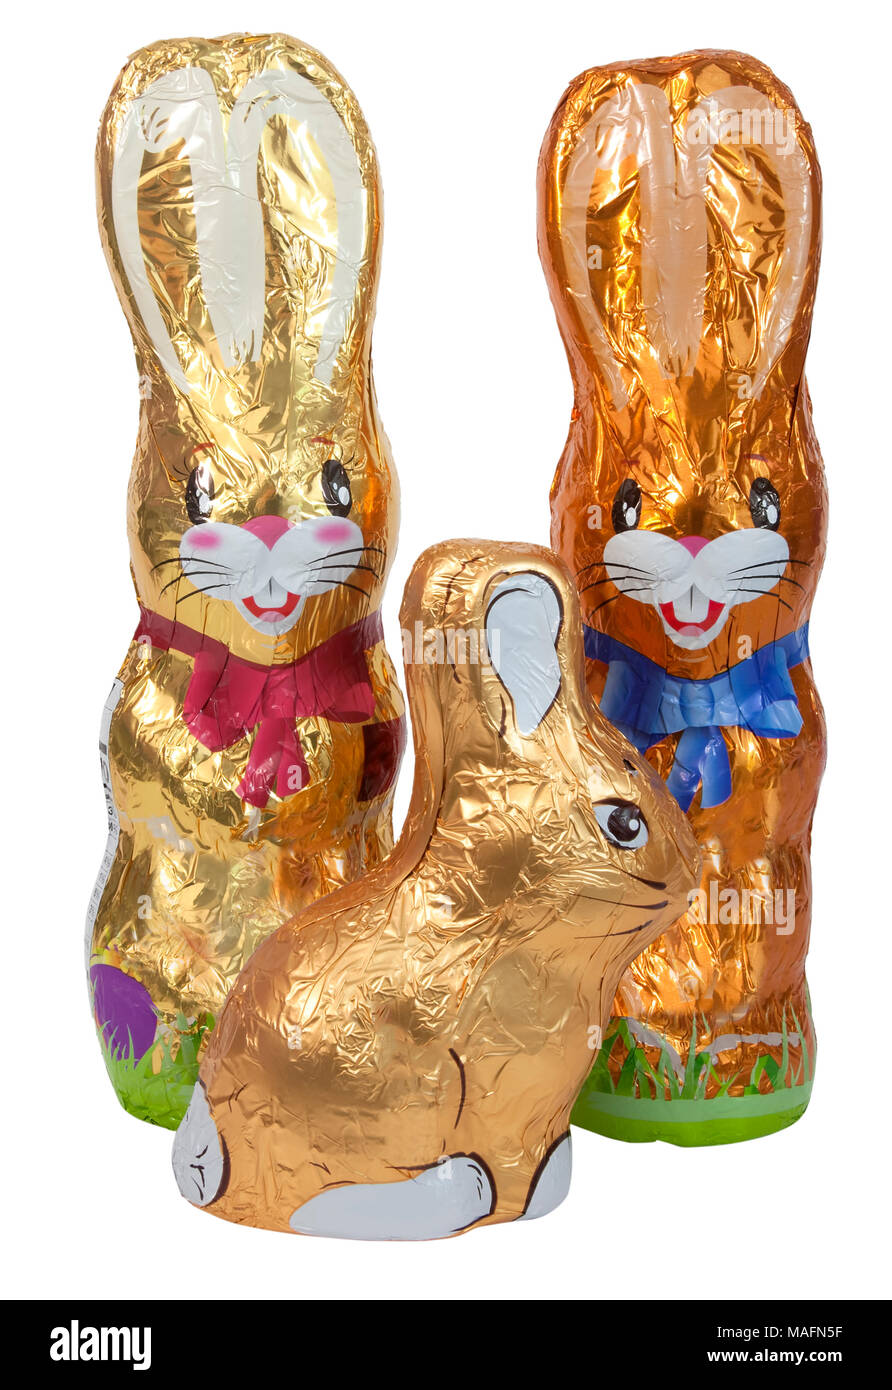 Foil-wrapped chocolate Easter bunny family. Isolated. - Stock Image